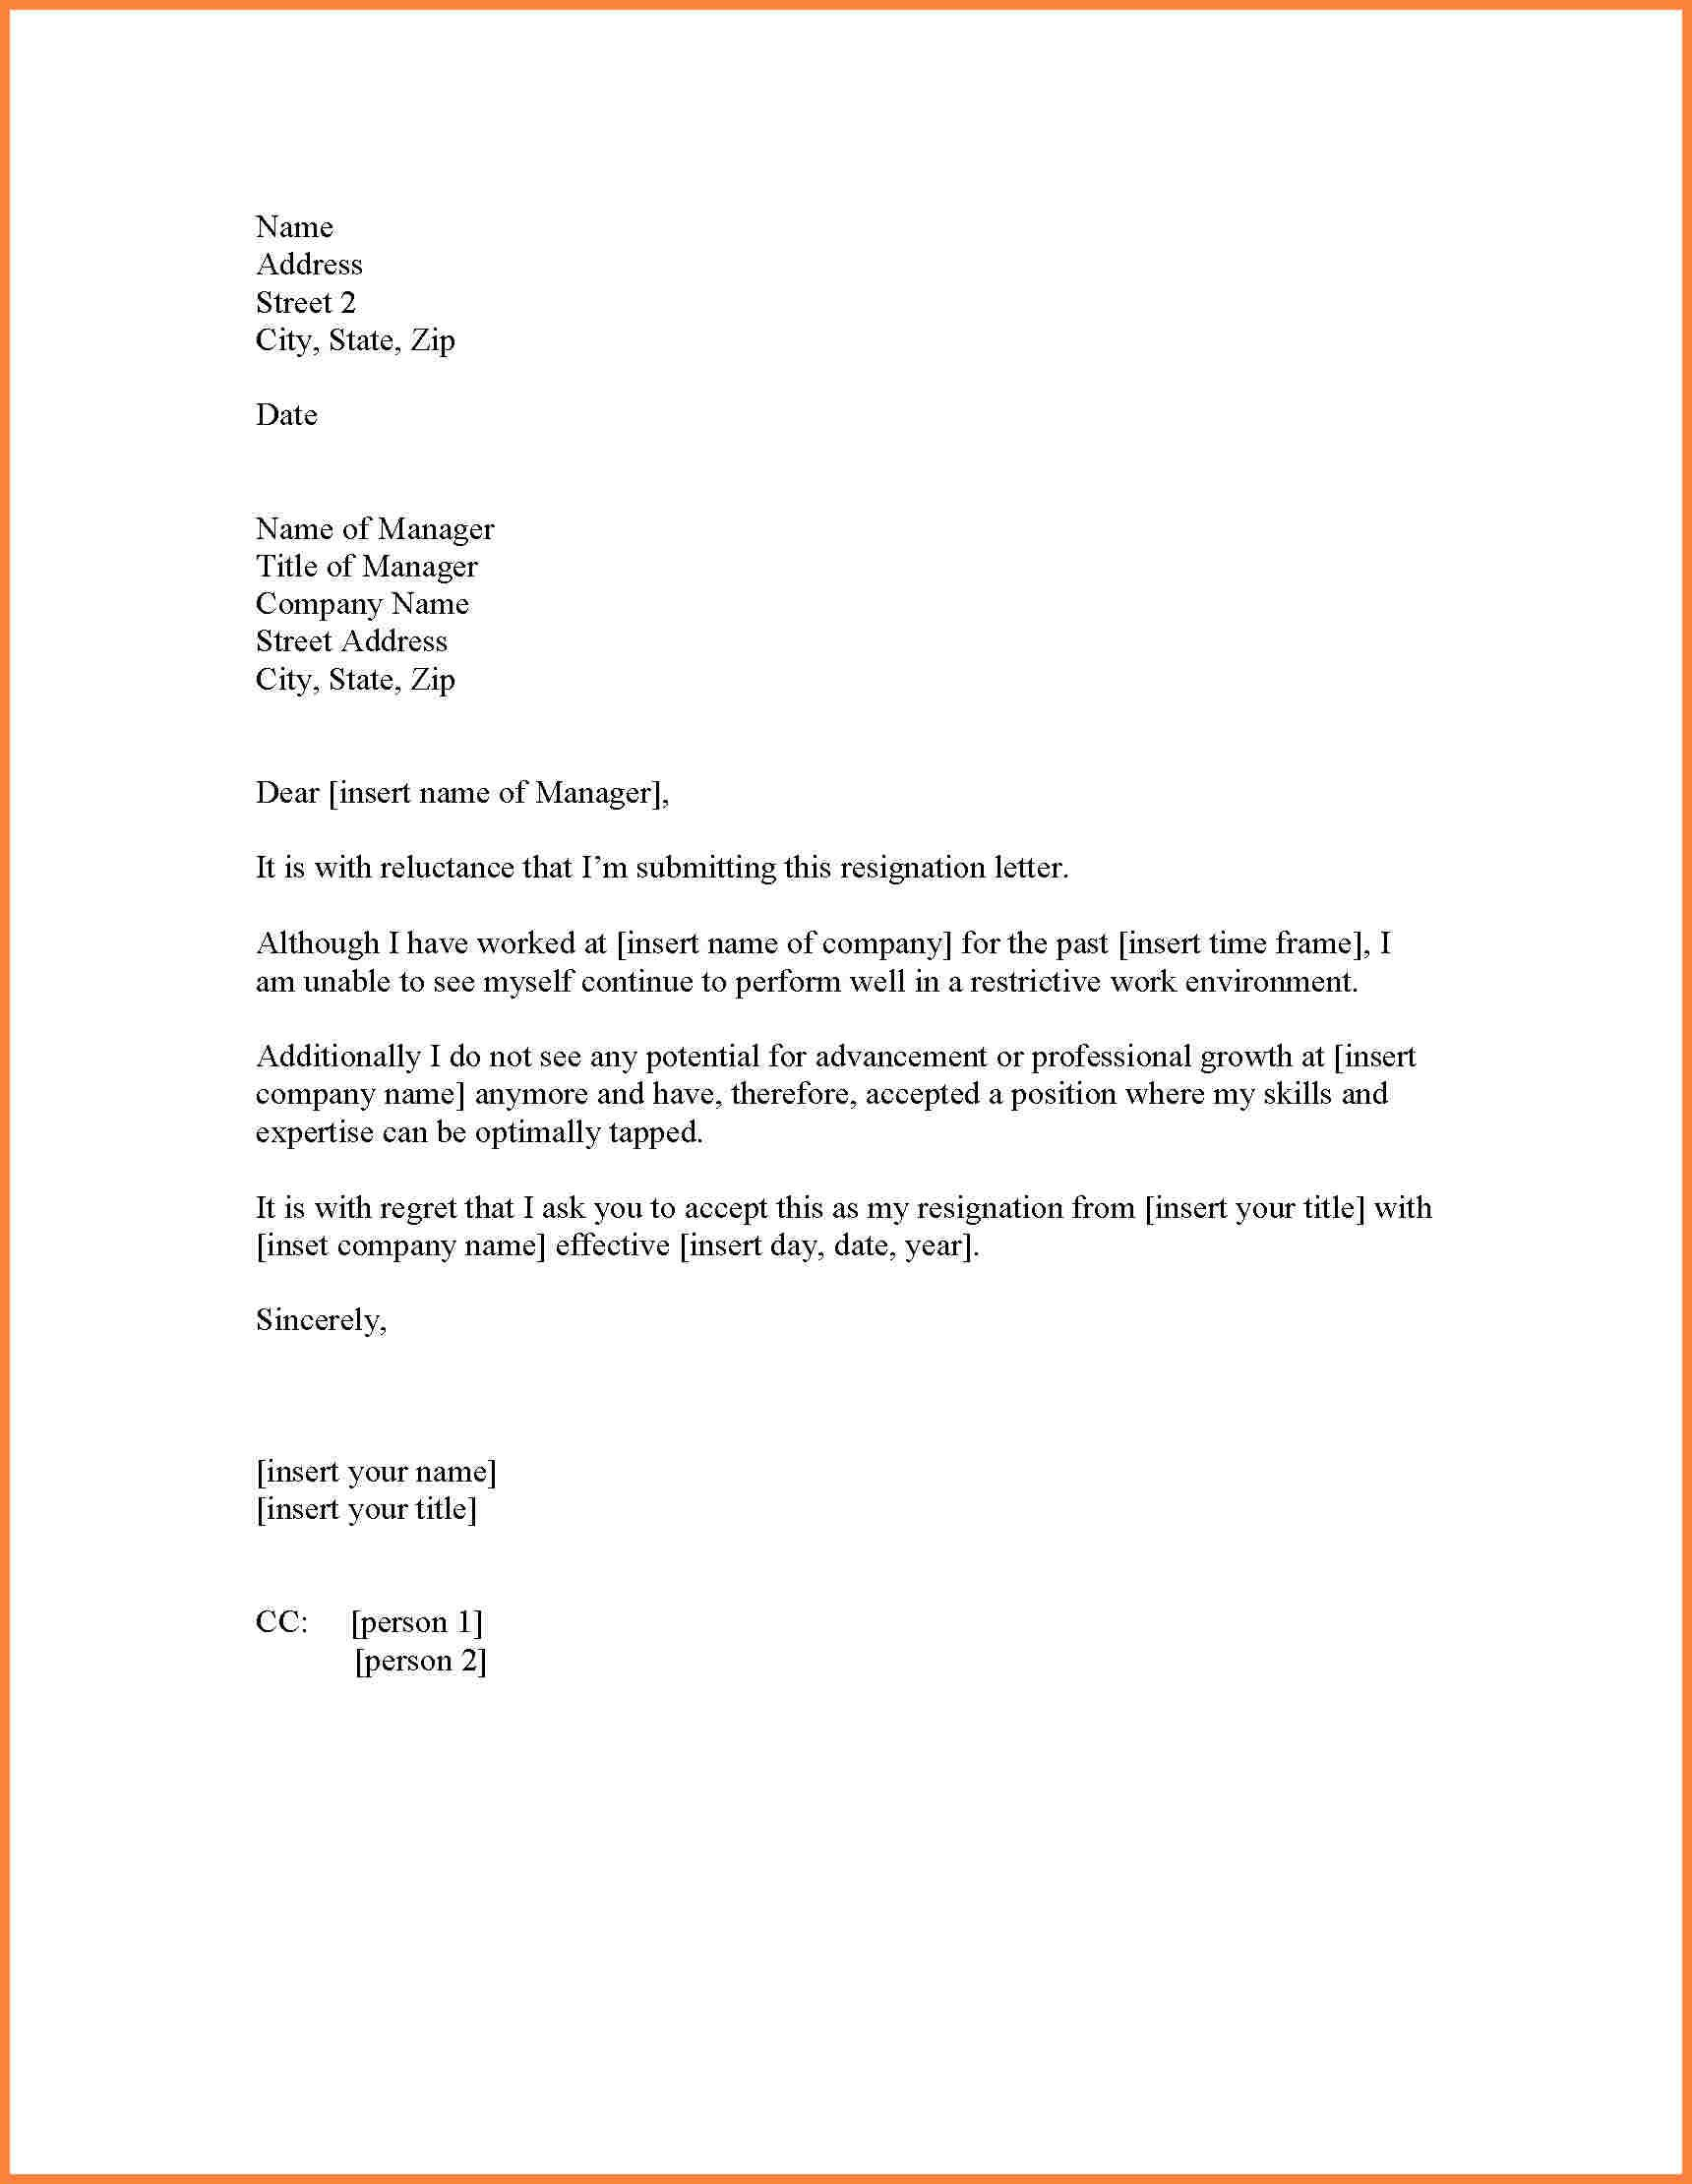 Best resignation letter for personal reasons resignation letter for best resignation letter for personal reasons resignation letter for personal reasons the legal profession depends on clear and exact language cover letter spiritdancerdesigns